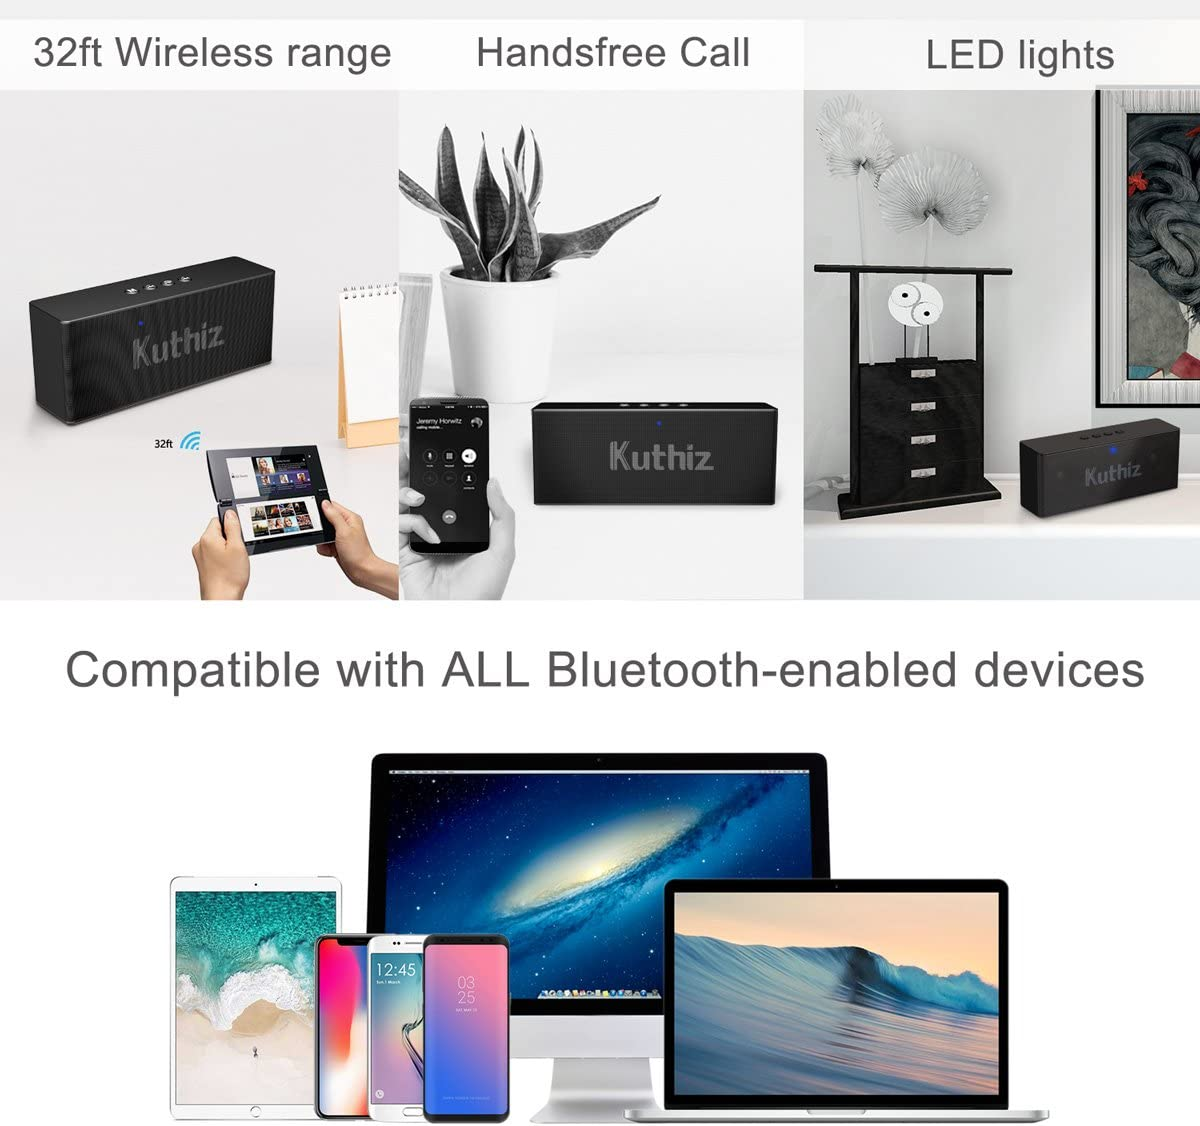 Outdoor Speakers for iPhone iPad Handsfree Call Black Portable Bluetooth Speakers,Forcovr Wireless Speaker with Bluetooth V4.2,Built-in Dual Driver Speakerphone Samsung etc